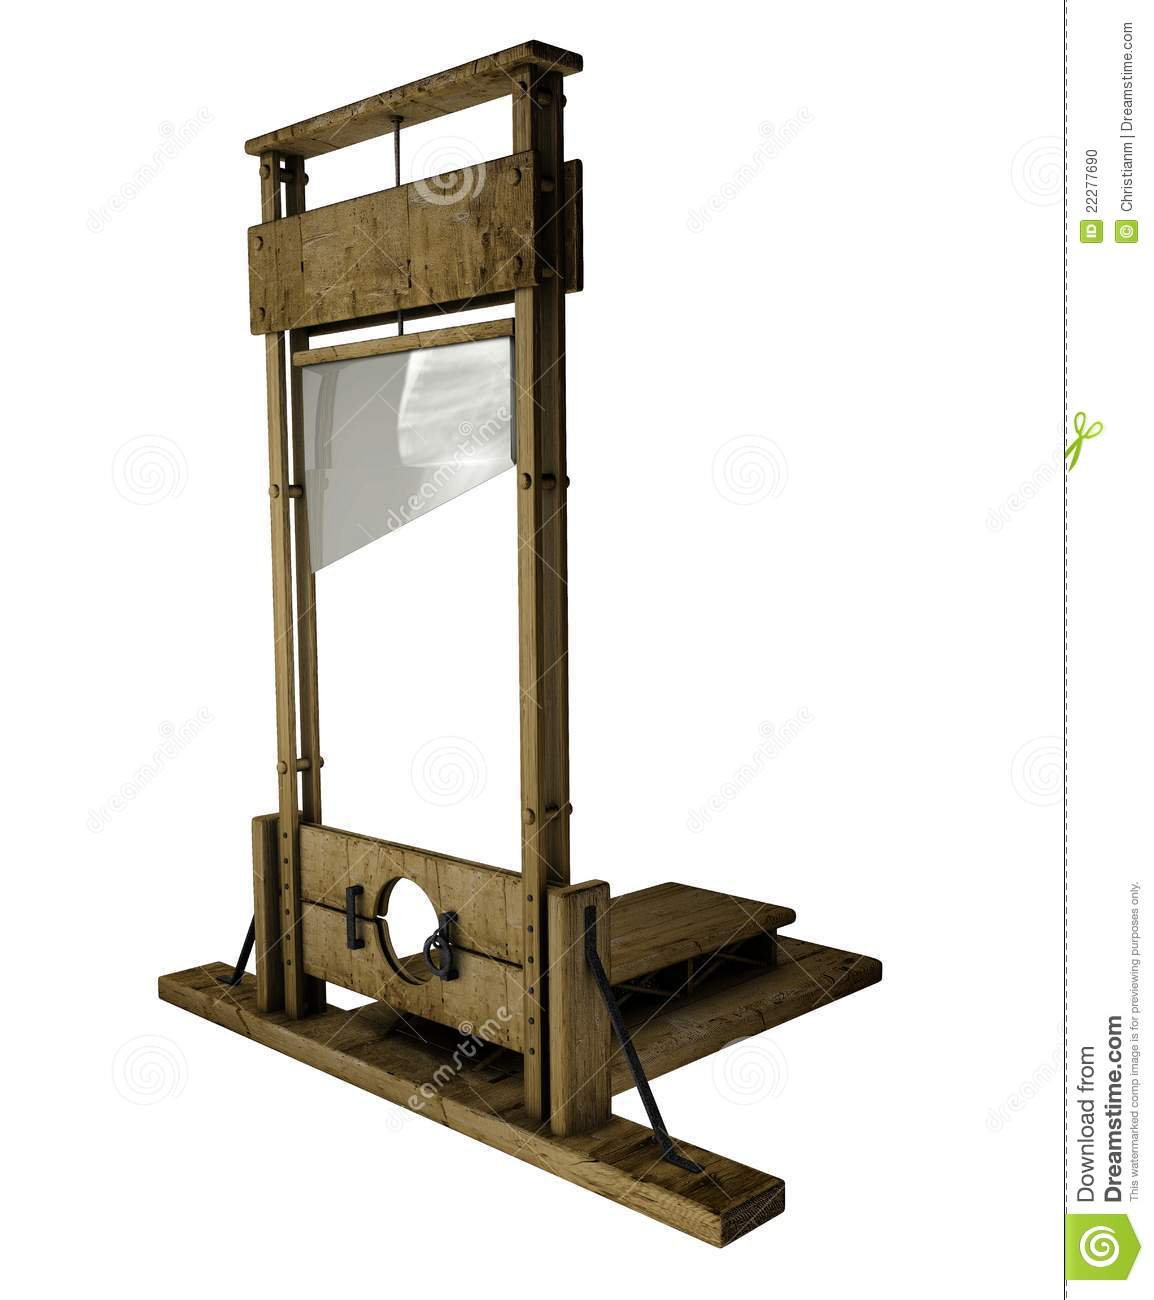 Guillotine Stock Photo - Image: 22277690